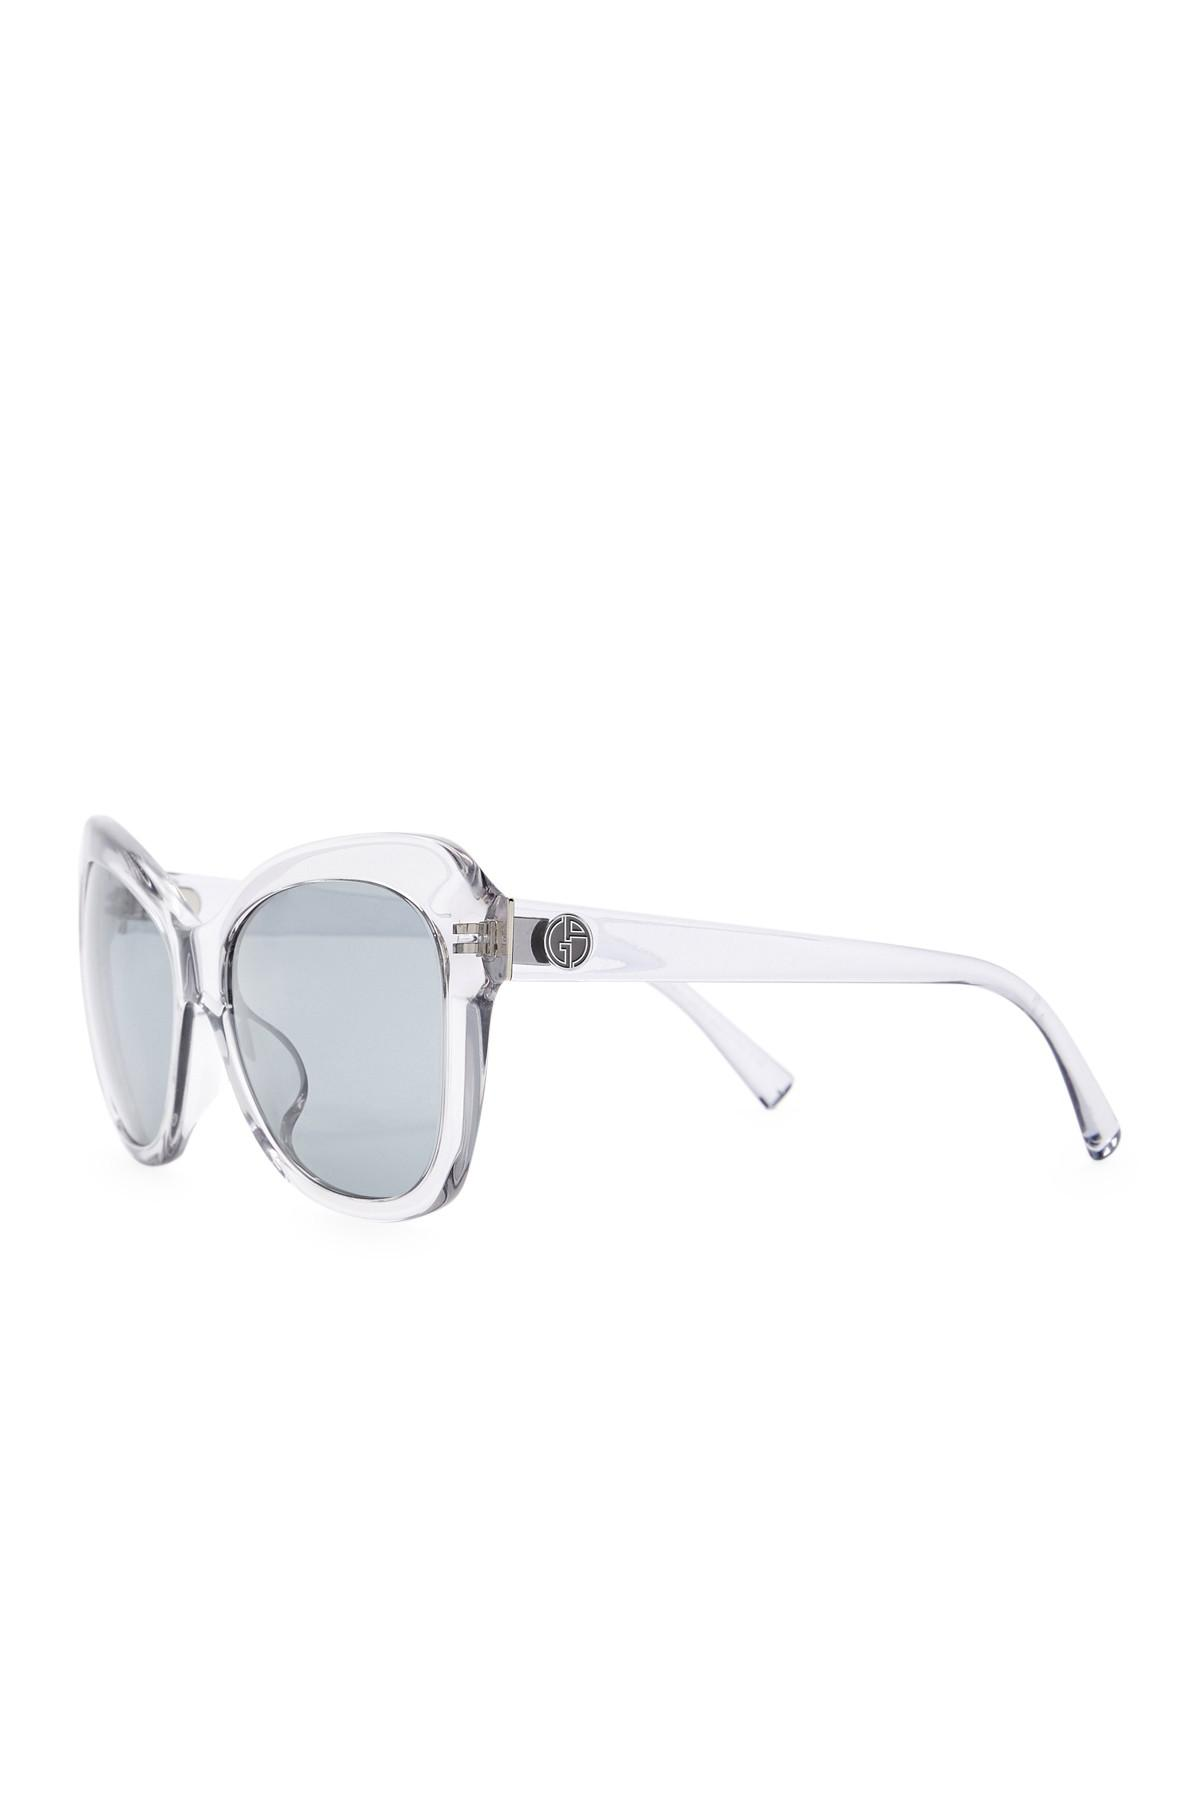 5795350bd5a Lyst - Giorgio Armani Cat Eye 57mm Acetate Frame Sunglasses in Gray